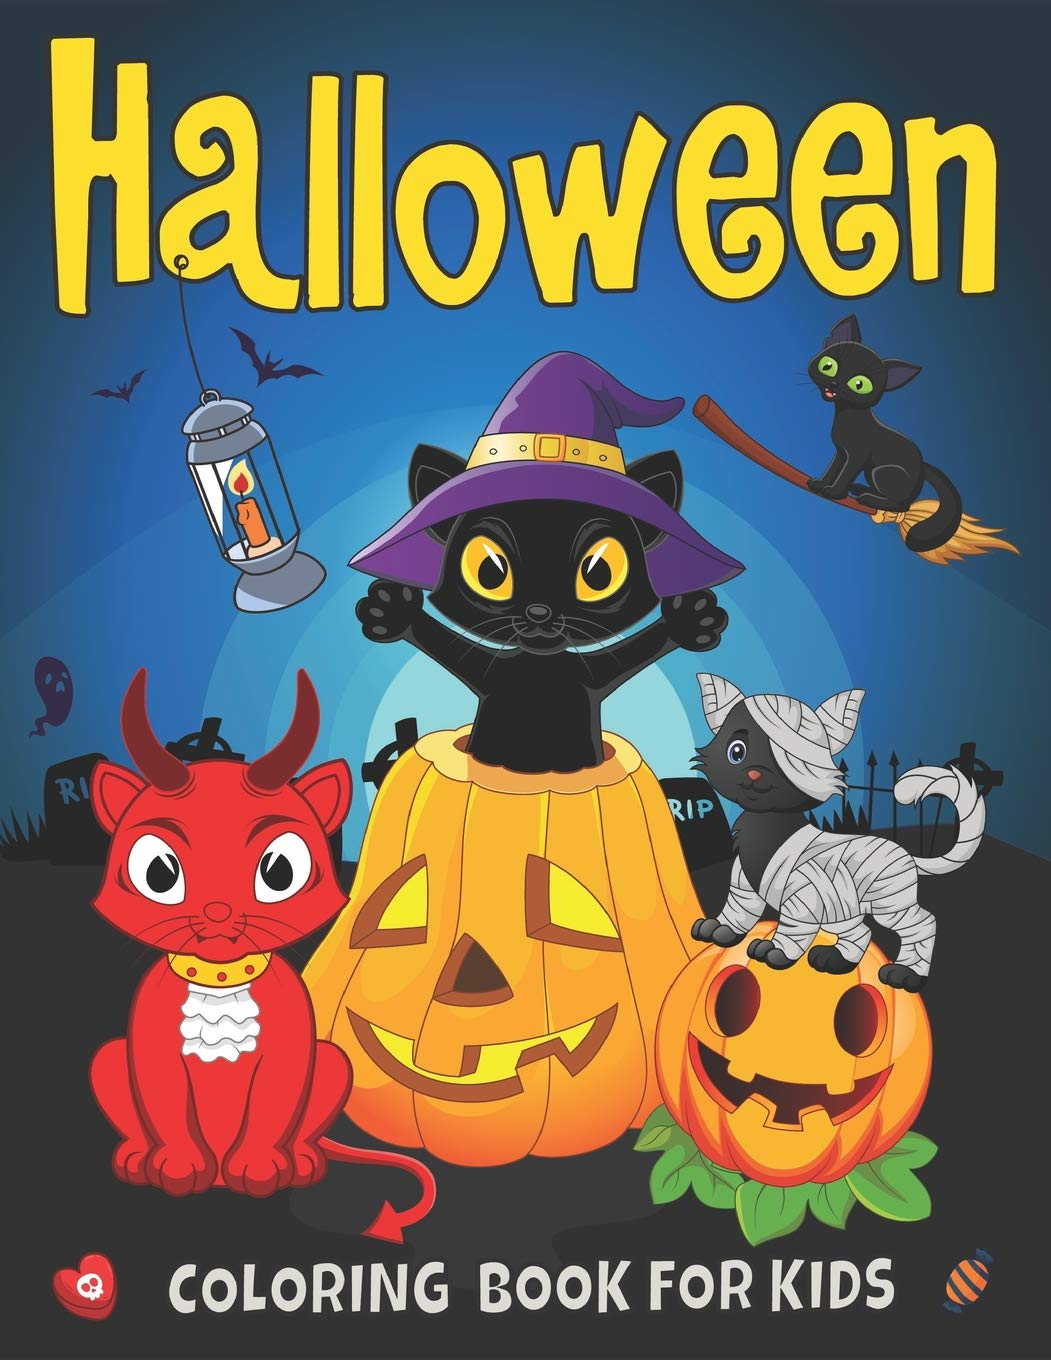 Halloween Coloring Book For Kids Cute Cats Costumes Ghosts Pumpkins And Witches Happy Halloween Coloring Pages For Preschoolers Toddlers Amy Sunday 9781723767531 Books Amazon Ca